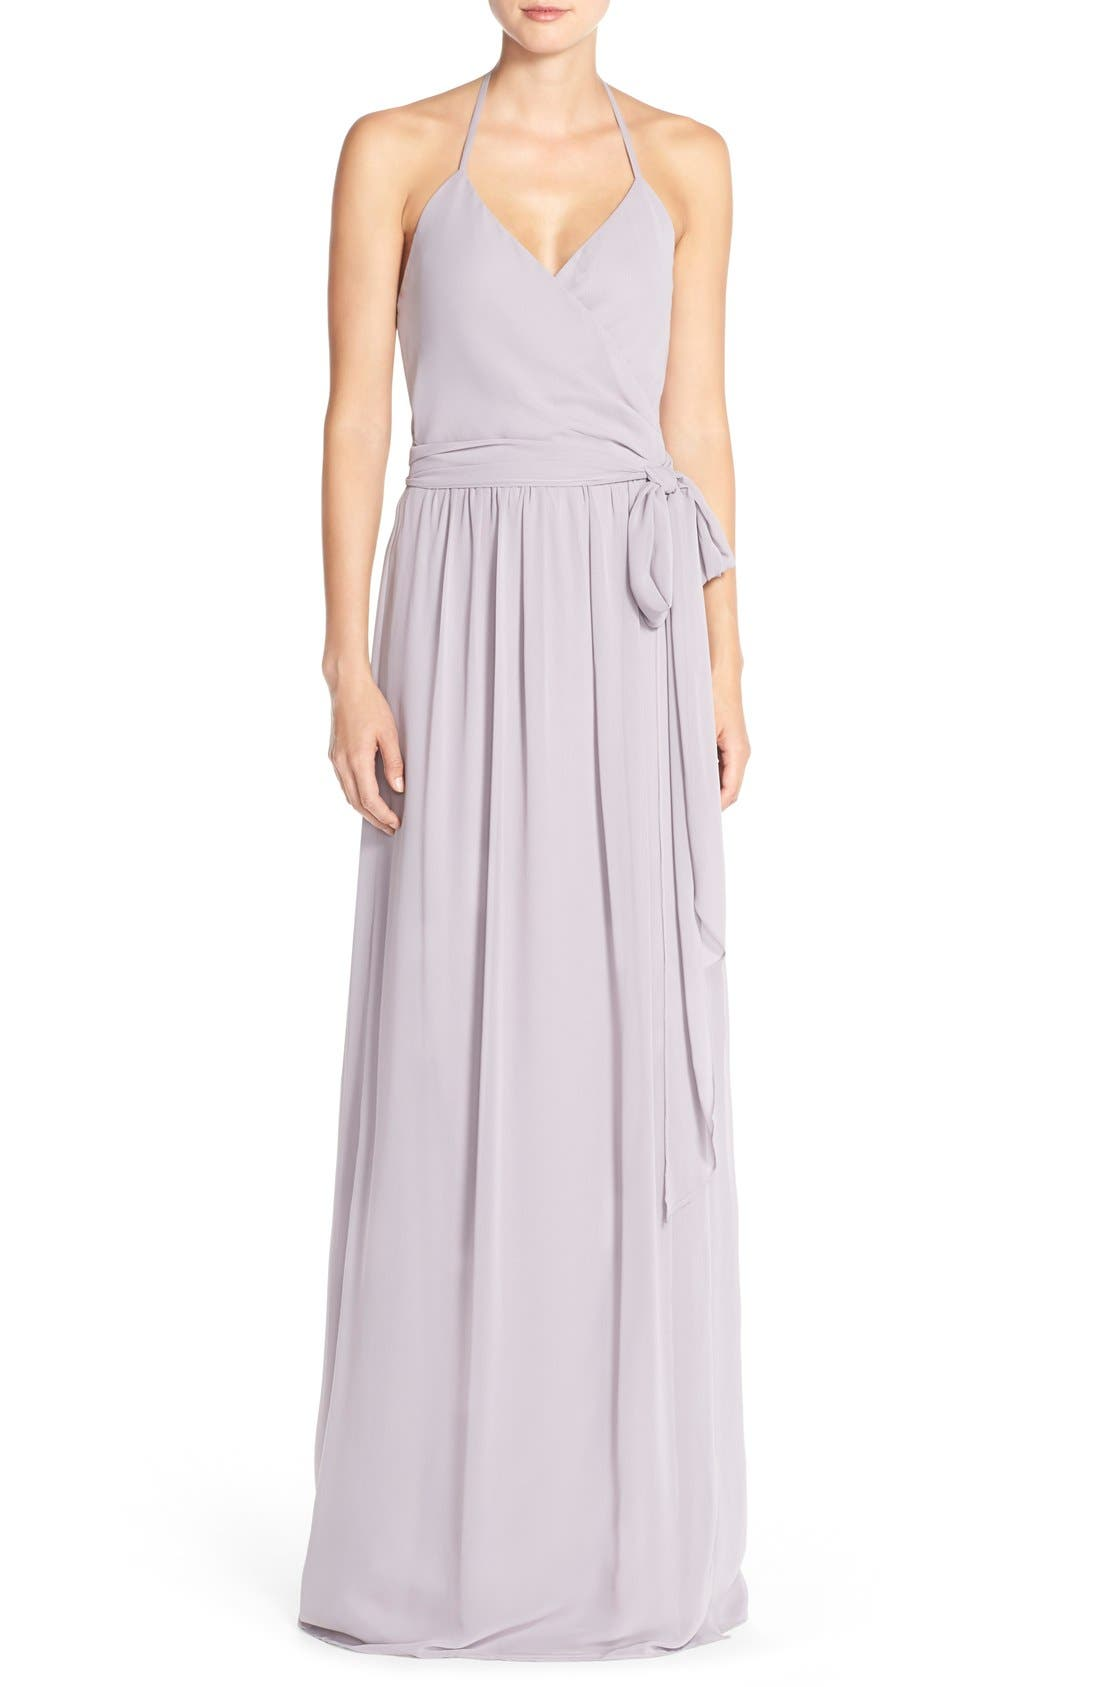 Alternate Image 1 Selected - Joanna August DC Halter Wrap Chiffon Gown